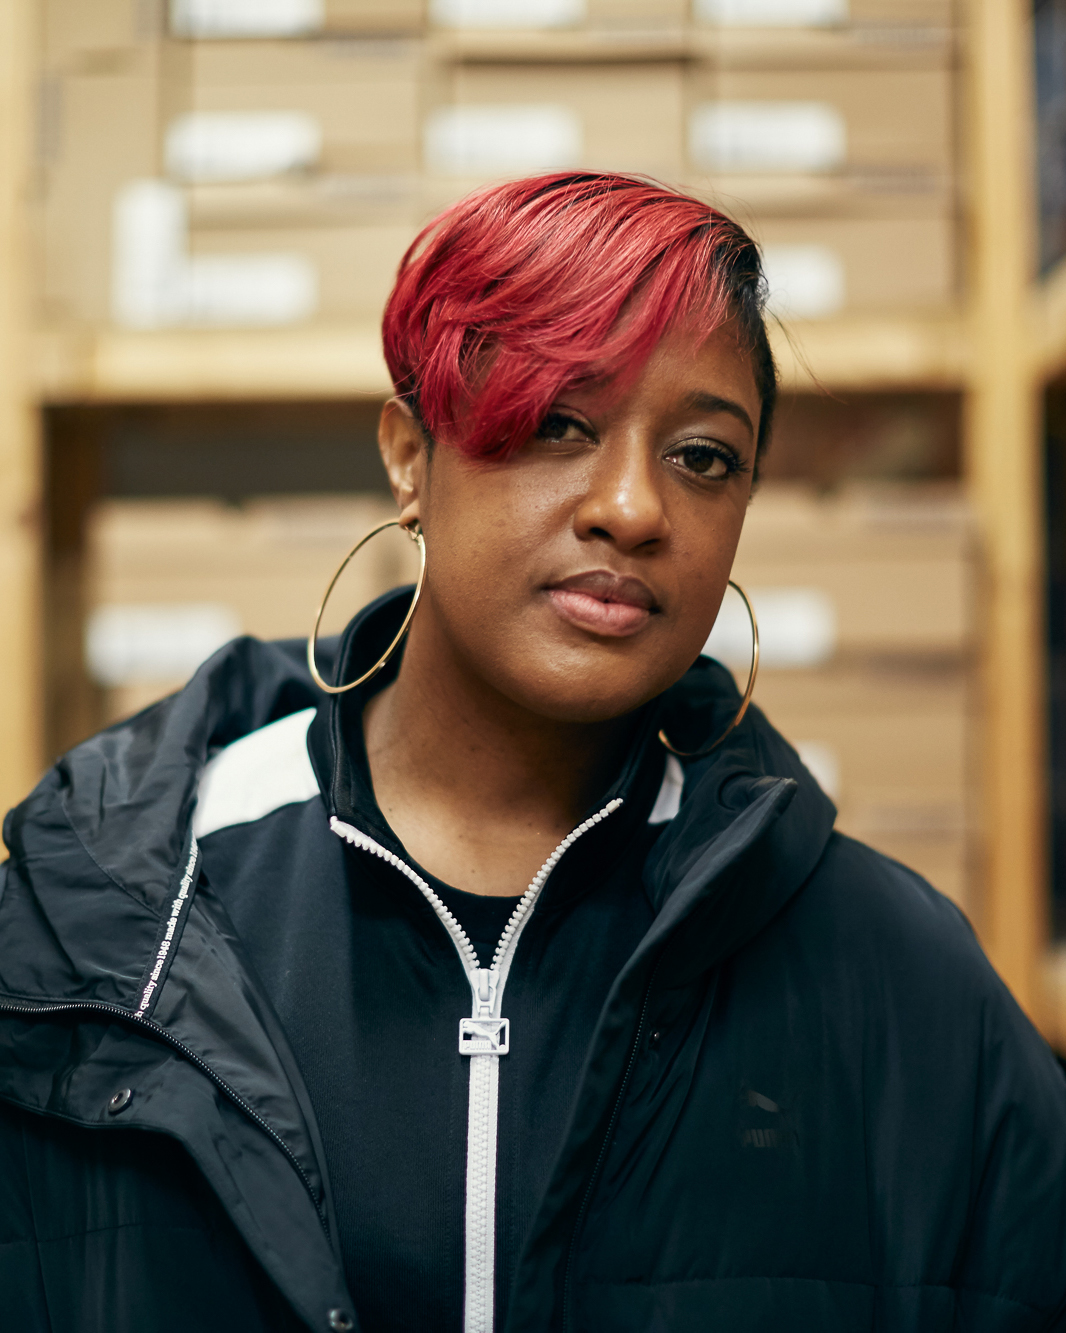 size?sessions – Rapsody